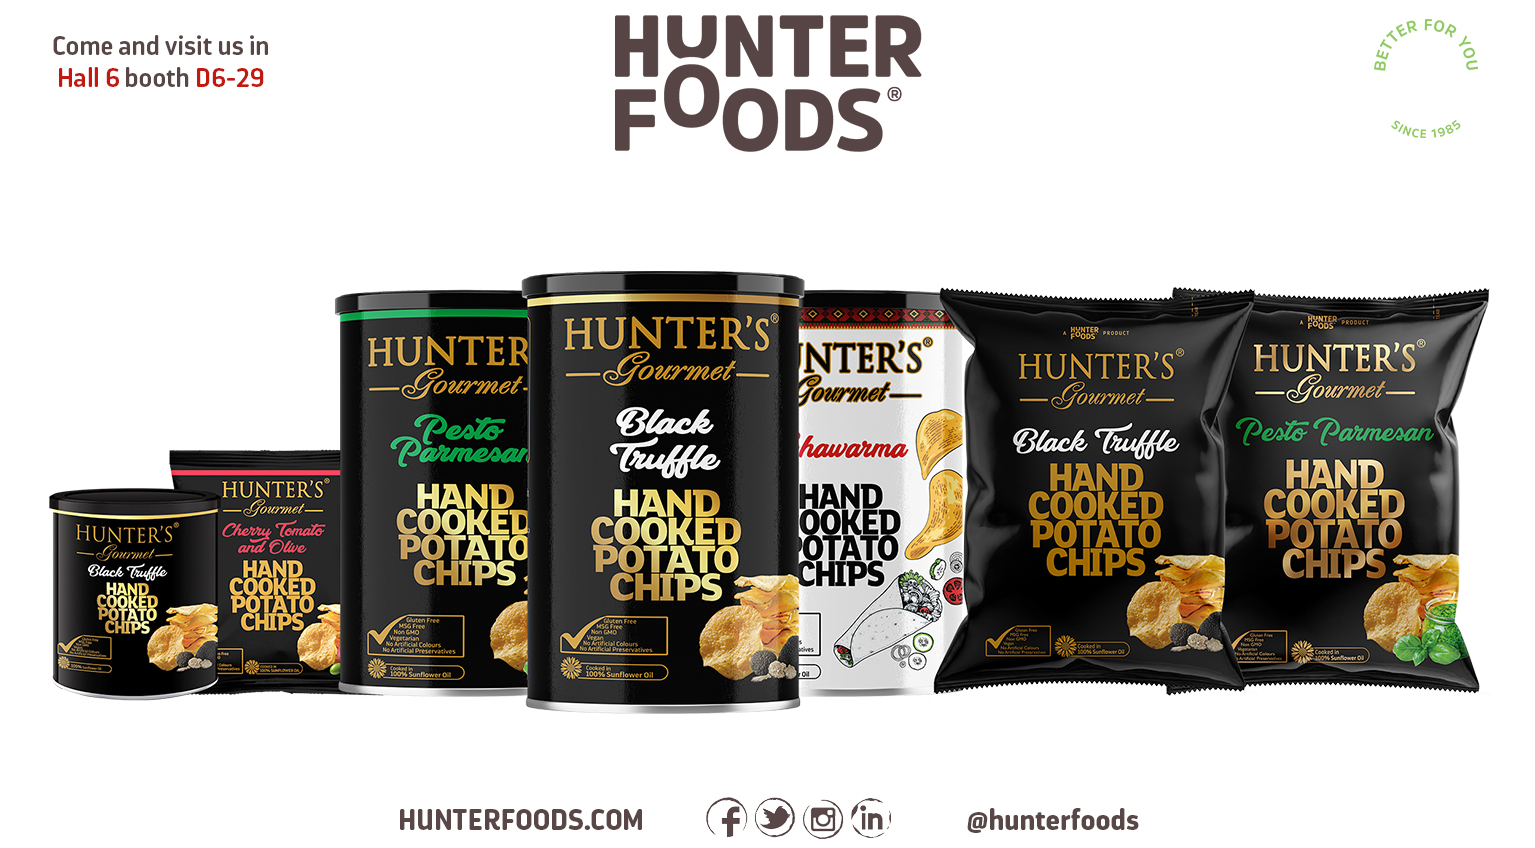 Hunter's Gourmet Hand Cooked Potato Chips